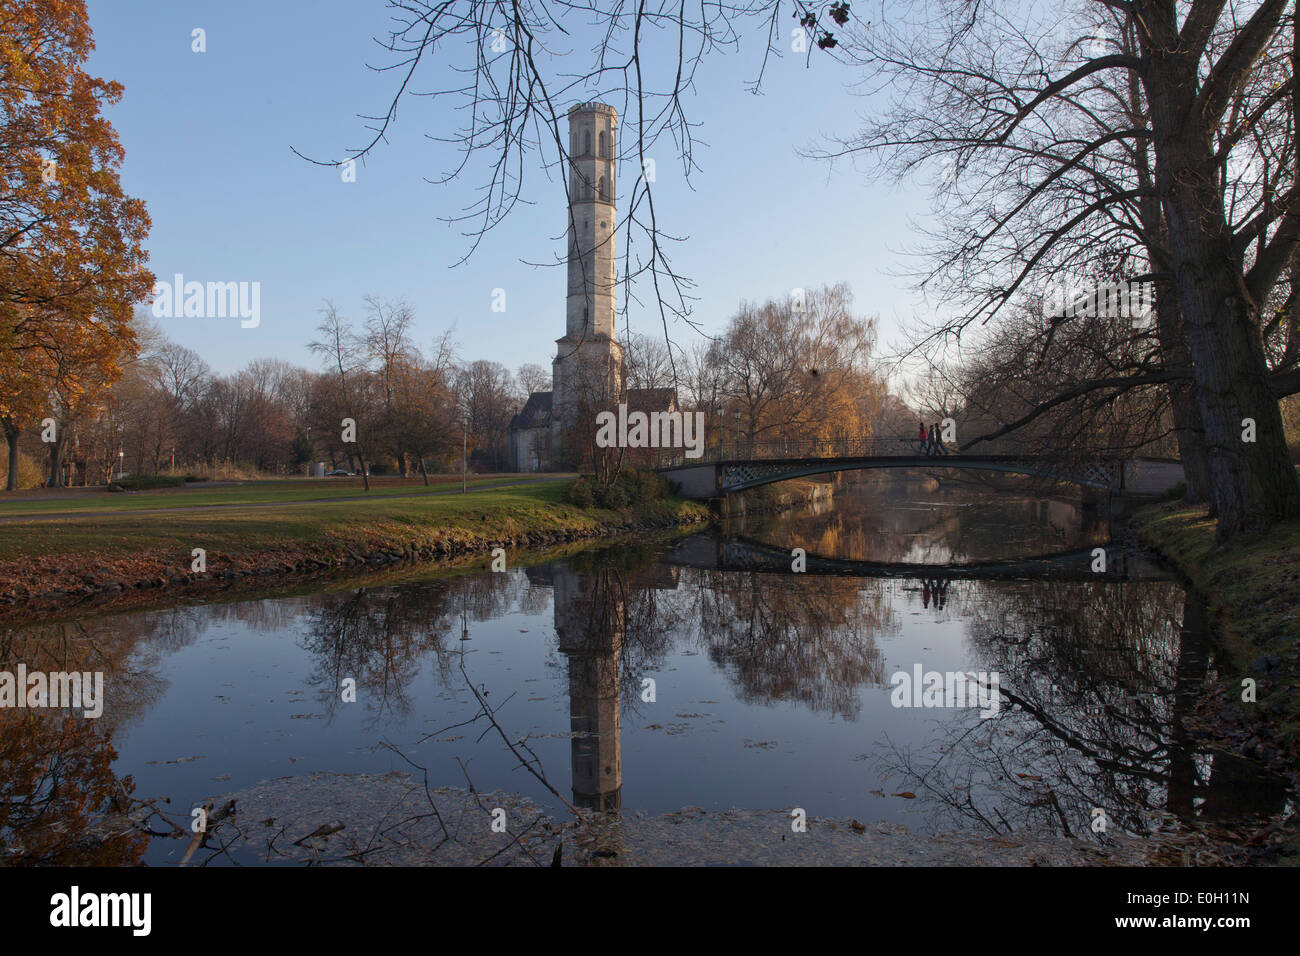 Pond in Brunswick park with decorated chimney, city park, Brunswick, Lower Saxony, Germany - Stock Image